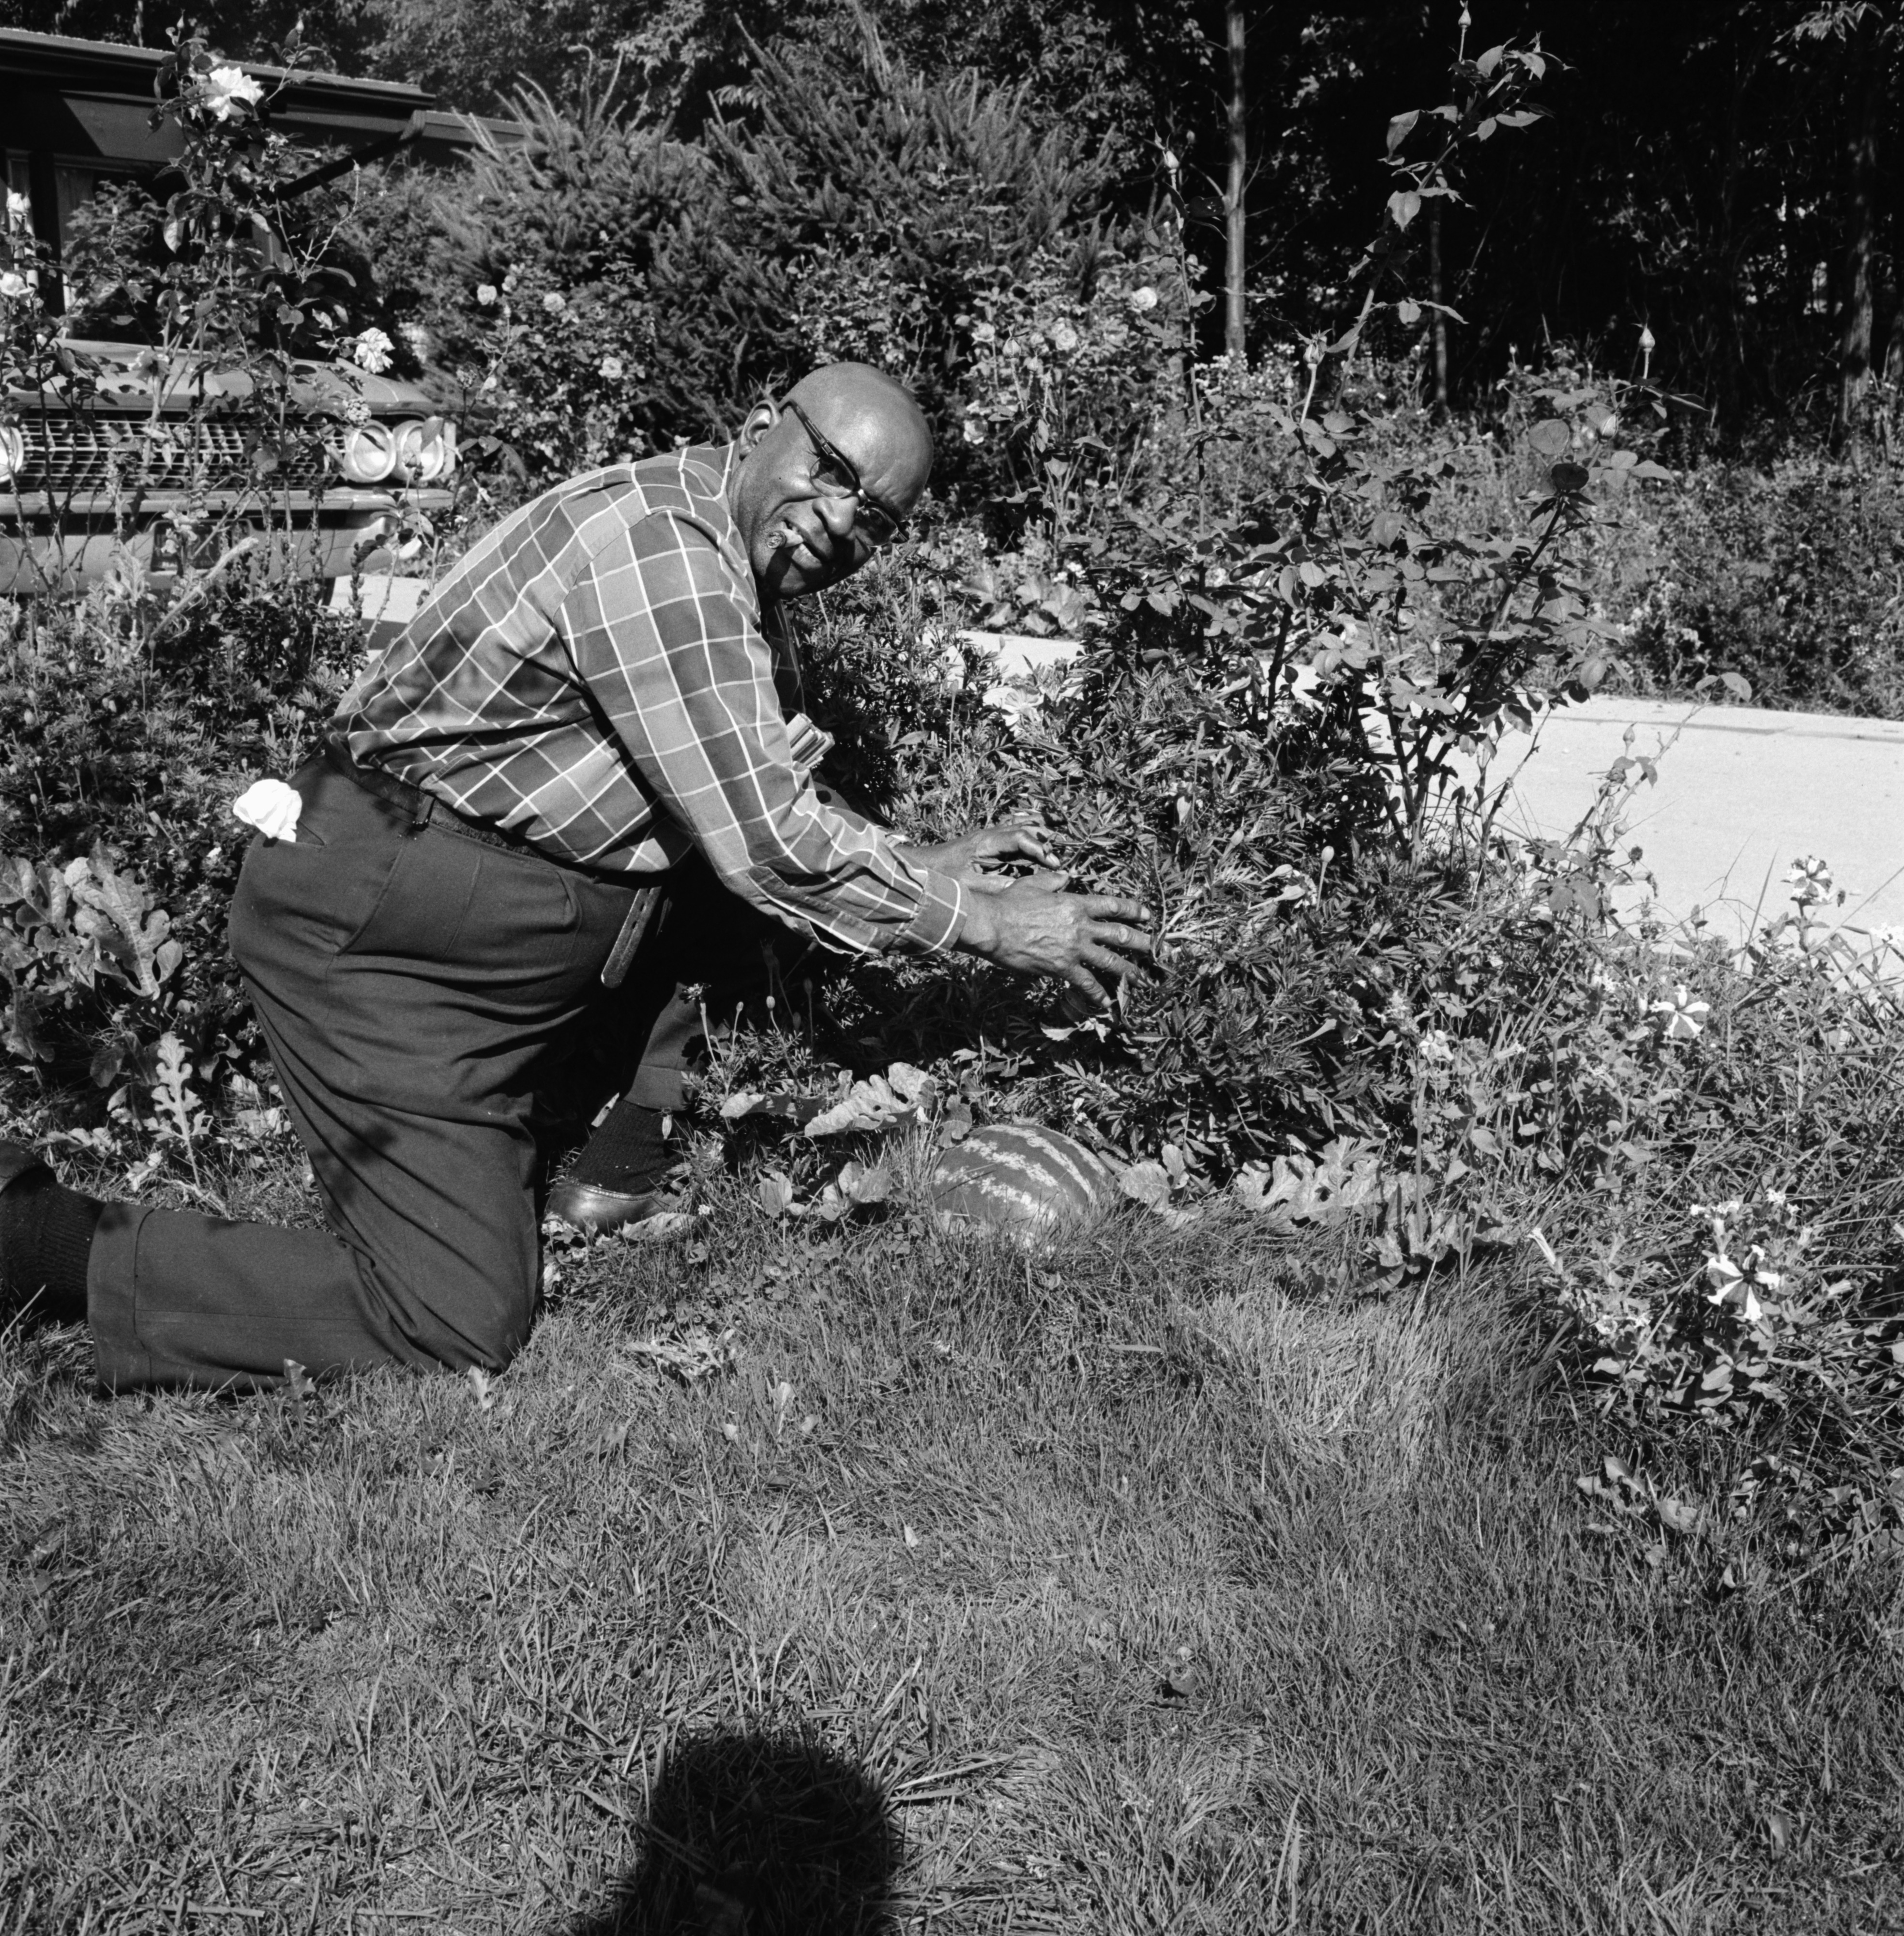 George Whitman and Watermelon in Garden, October 1968 image